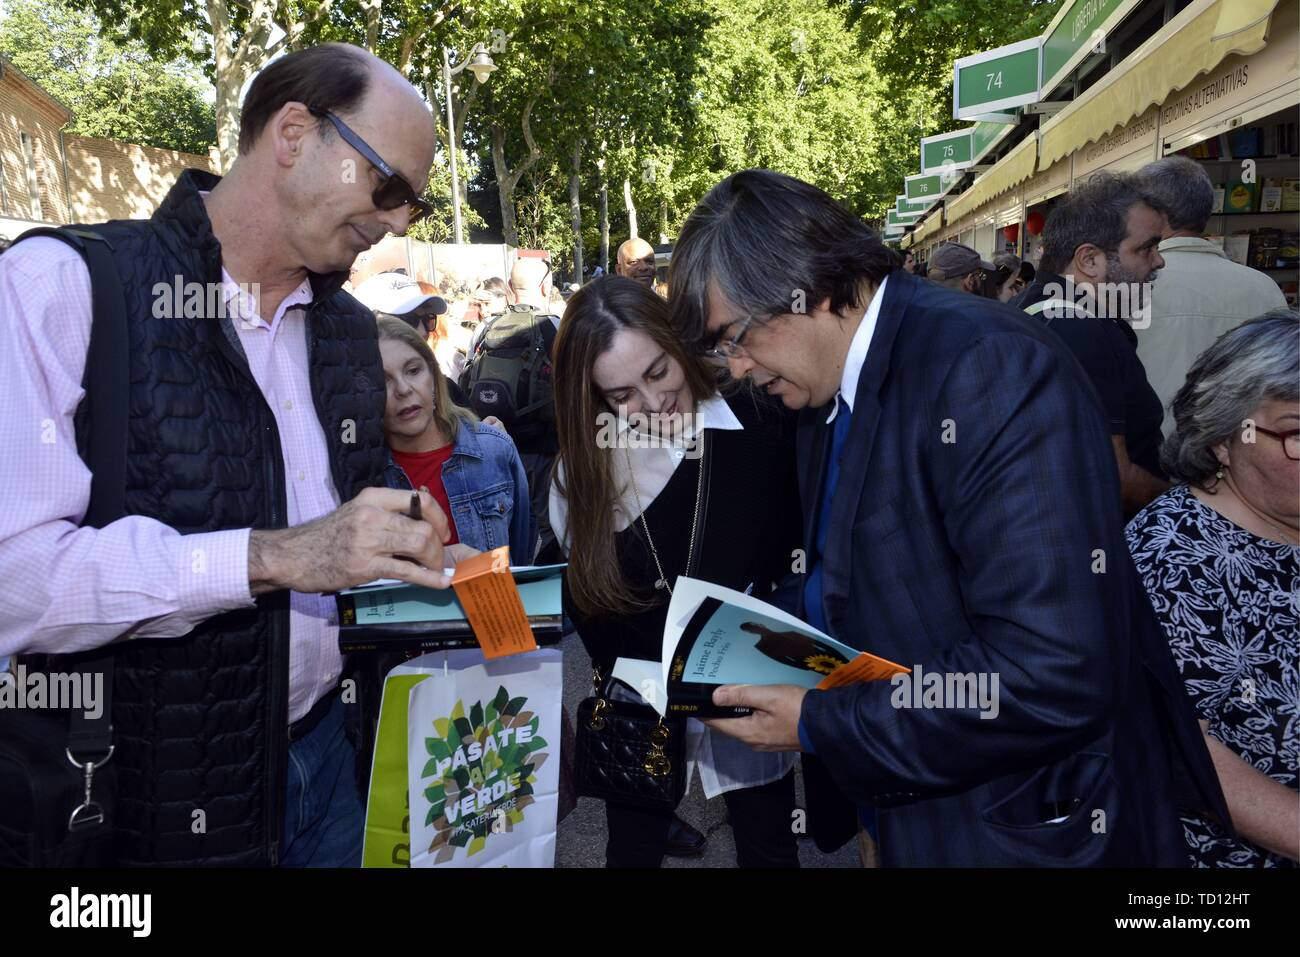 Page 3 Bayly High Resolution Stock Photography And Images Alamy Next jaime bayly entrevista al comediante cubano eddy calderón. https www alamy com madrid spain 11th june 2019 the writer jaime bayly during the book fair in madrid tuesday june 11 2019 credit cordon pressalamy live news image248959700 html